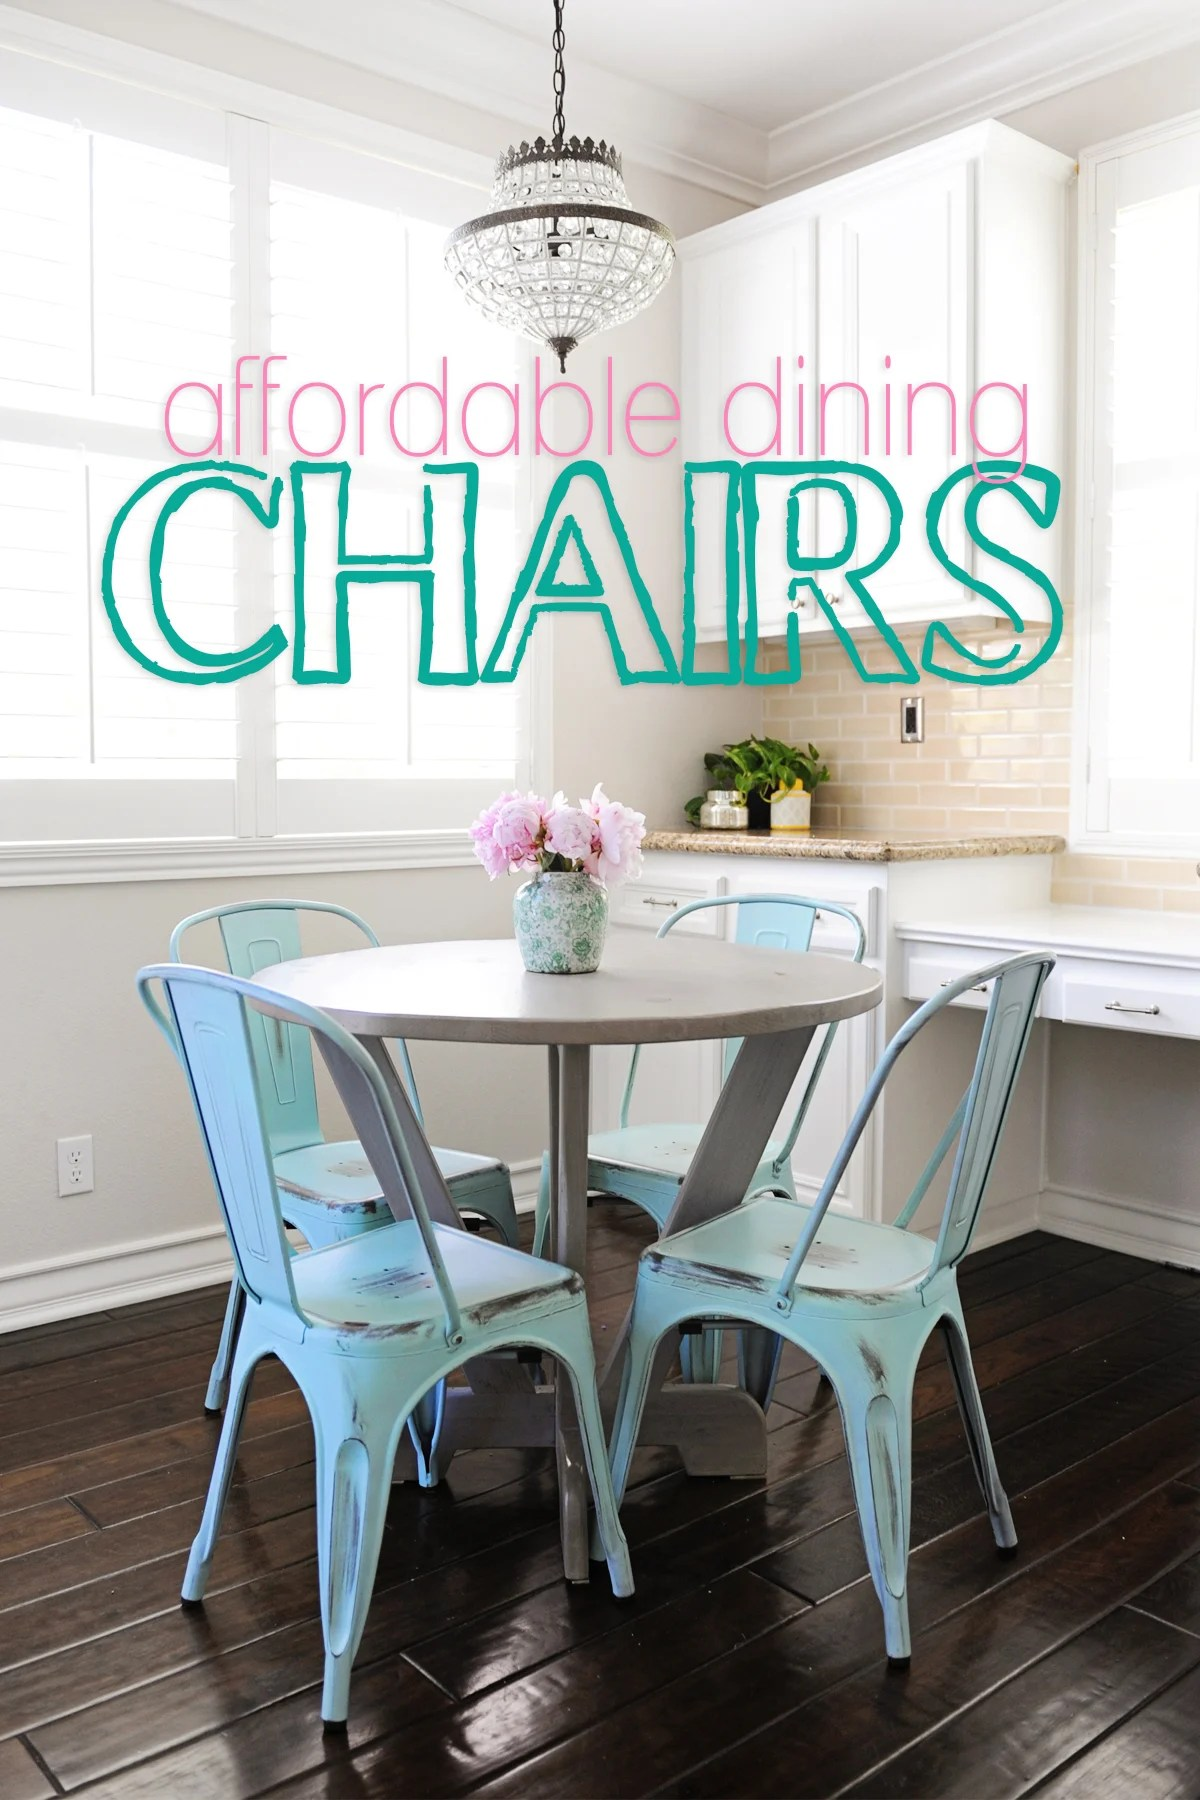 Where To Buy Dining Chairs Best Place To Buy Affordable Dining Chairs